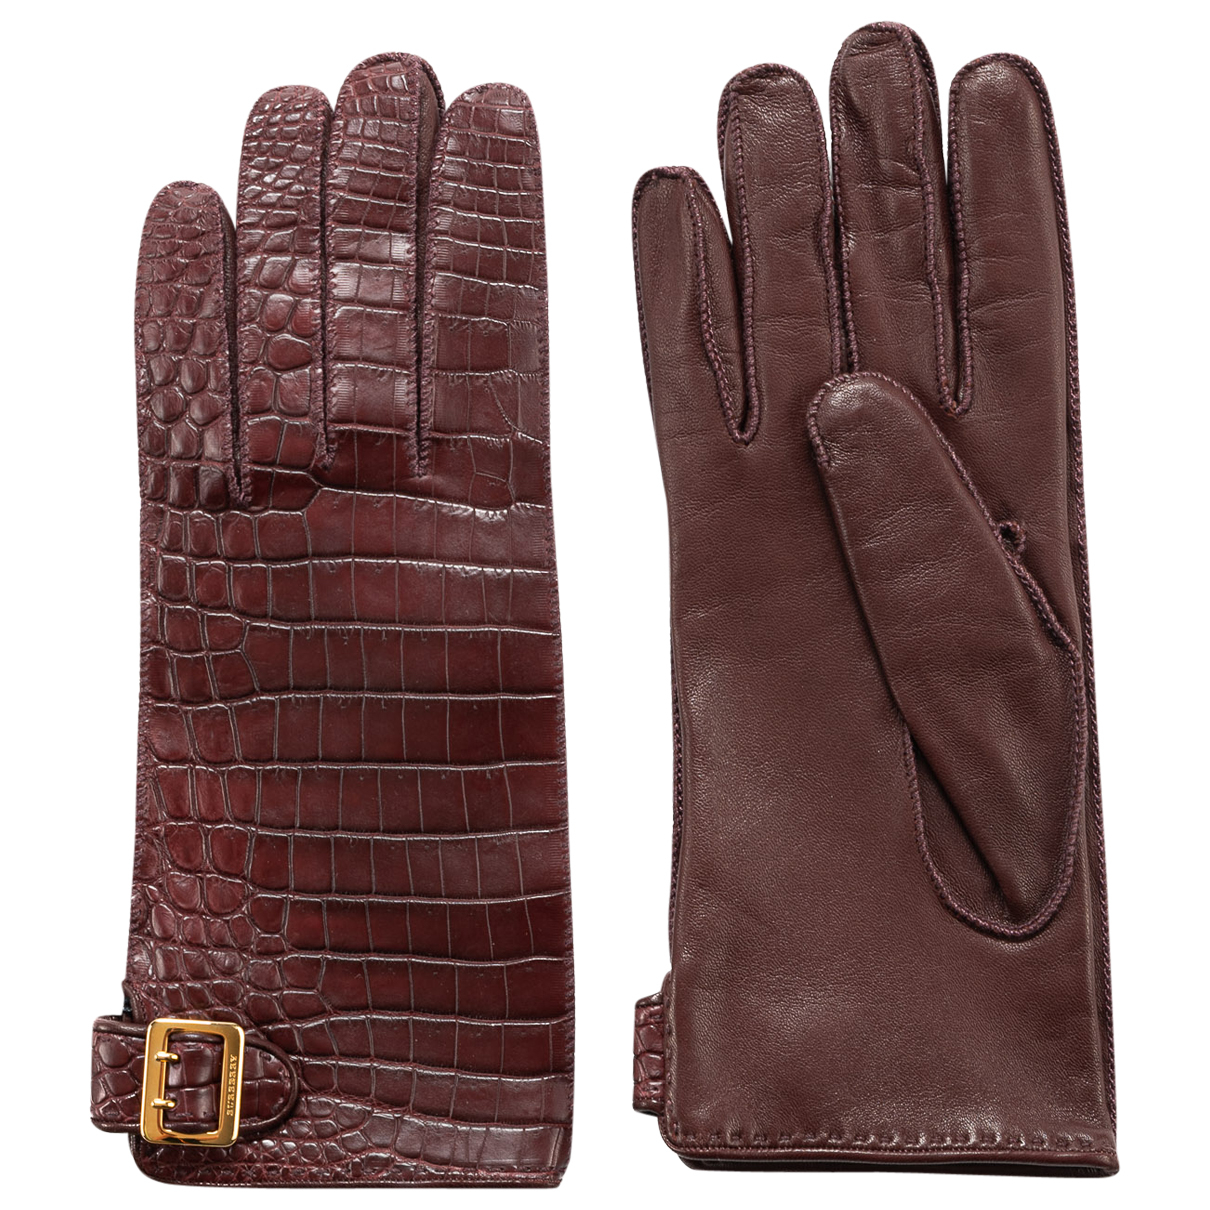 Burberry N Burgundy Gloves for Women 7.5 Inches